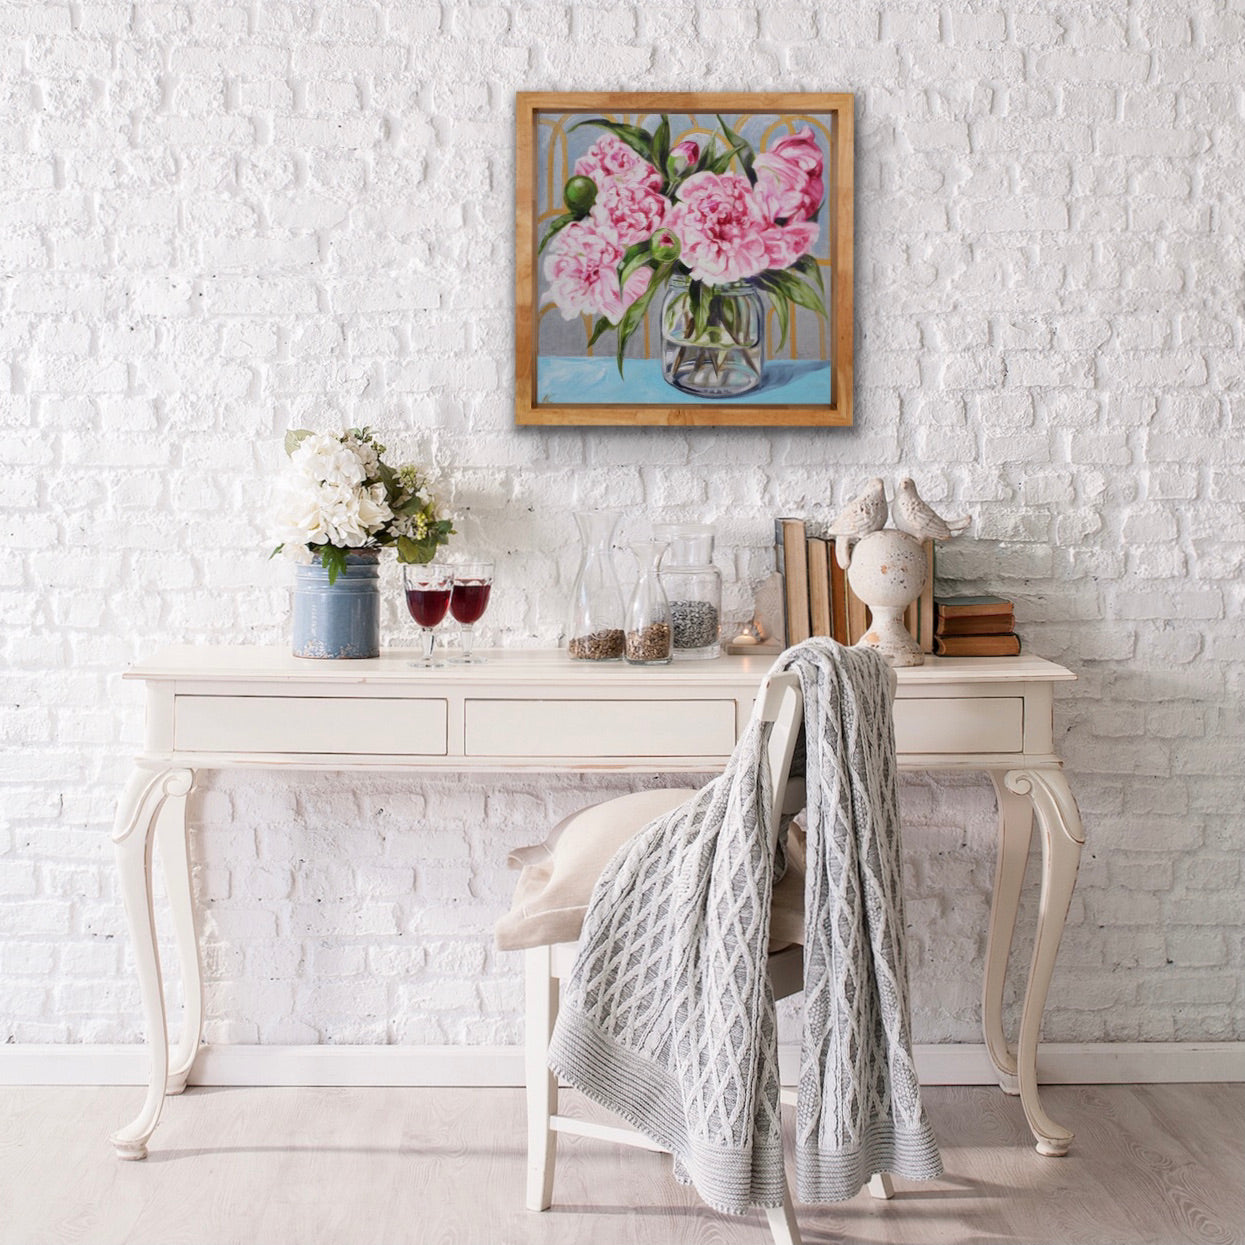 Pink Peonies and the Gold Wallpaper